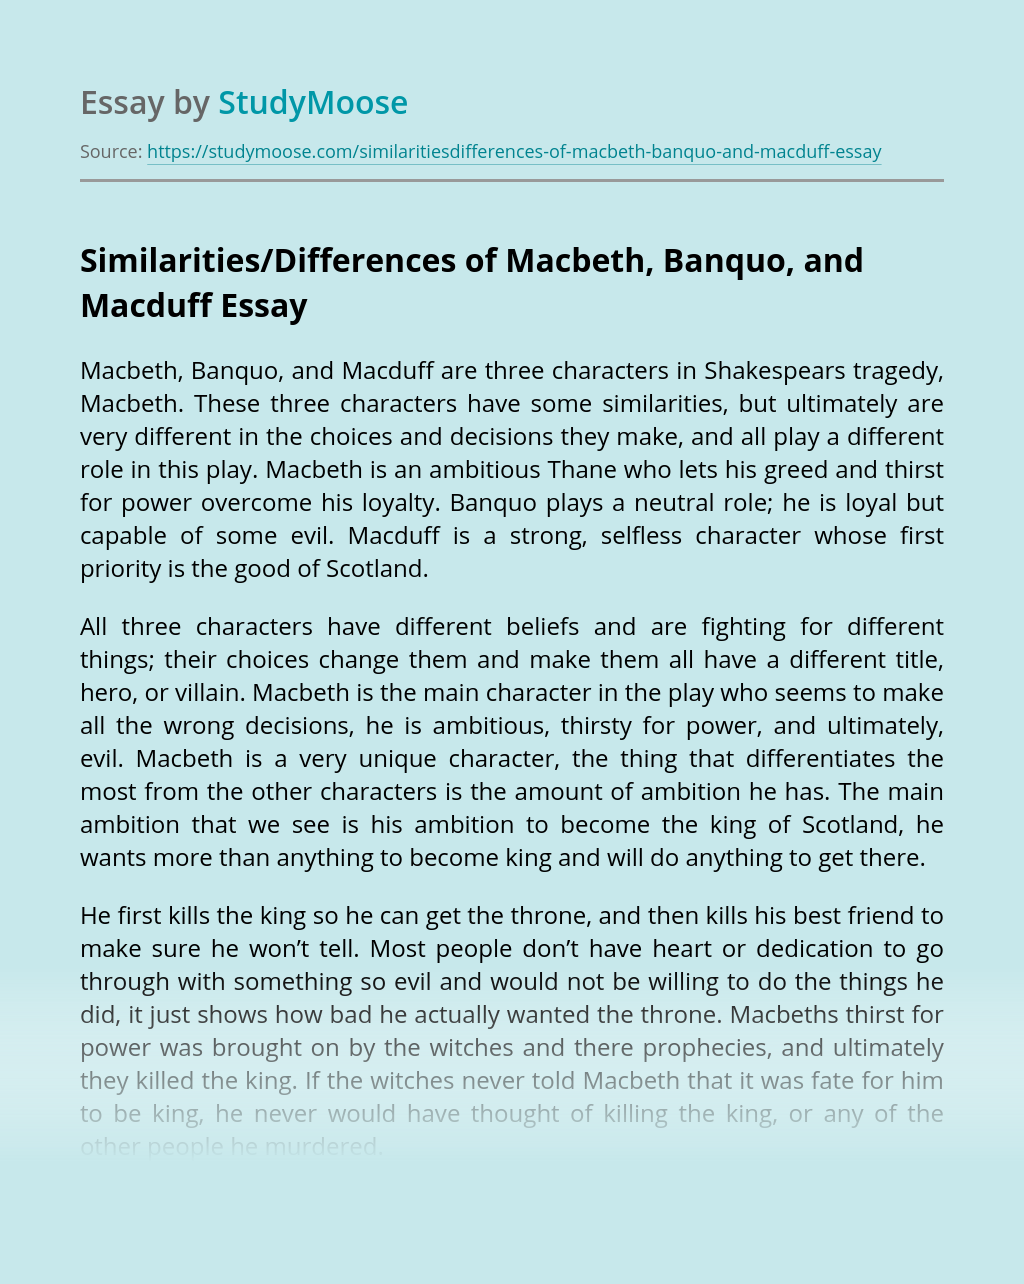 Similarities/Differences of Macbeth, Banquo, and Macduff